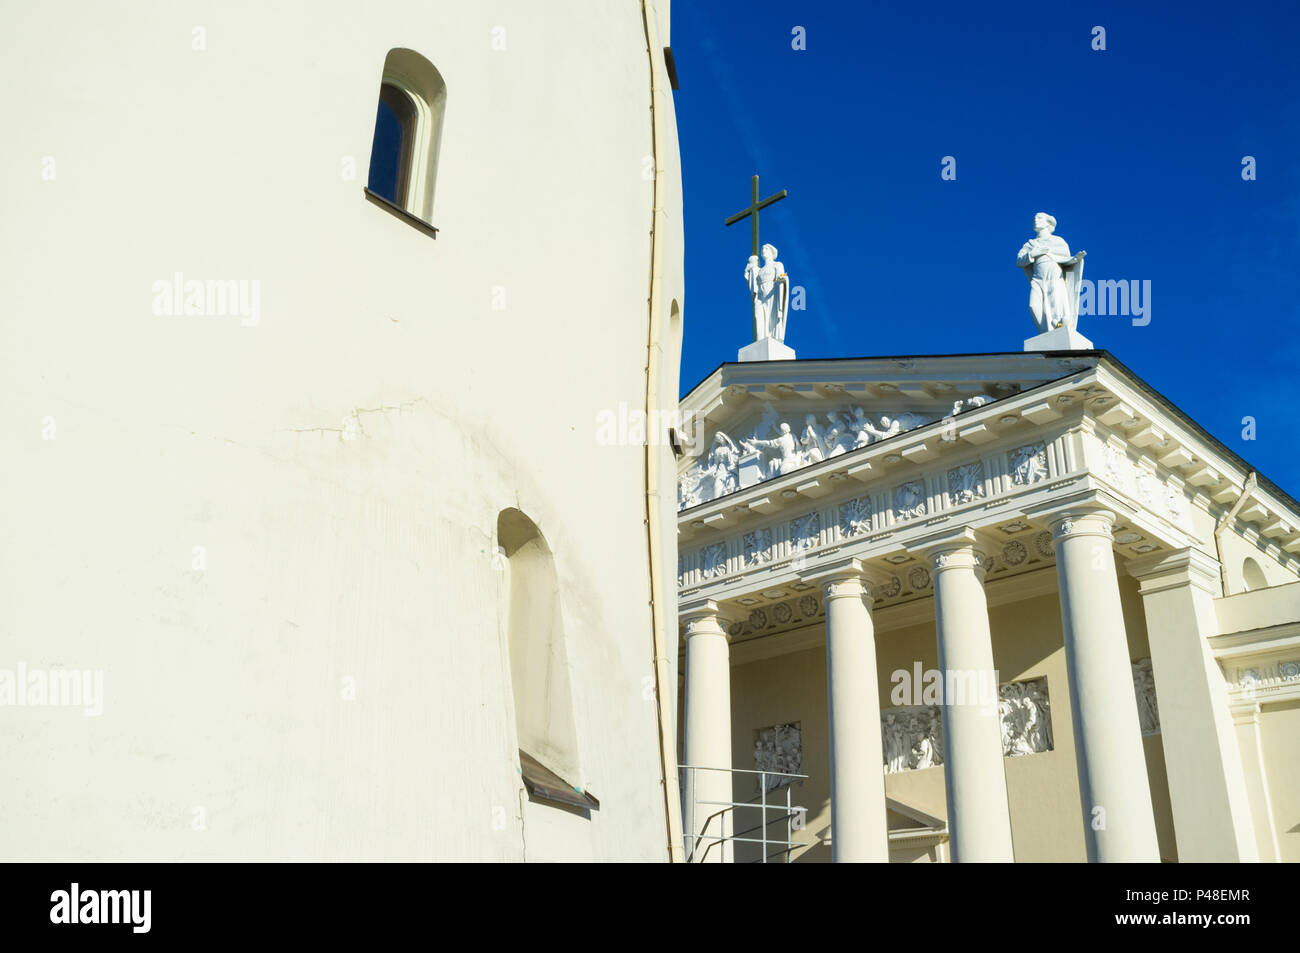 Vilnius Cathedral and belfry. Vilnius, Lithuania, Europe - Stock Image